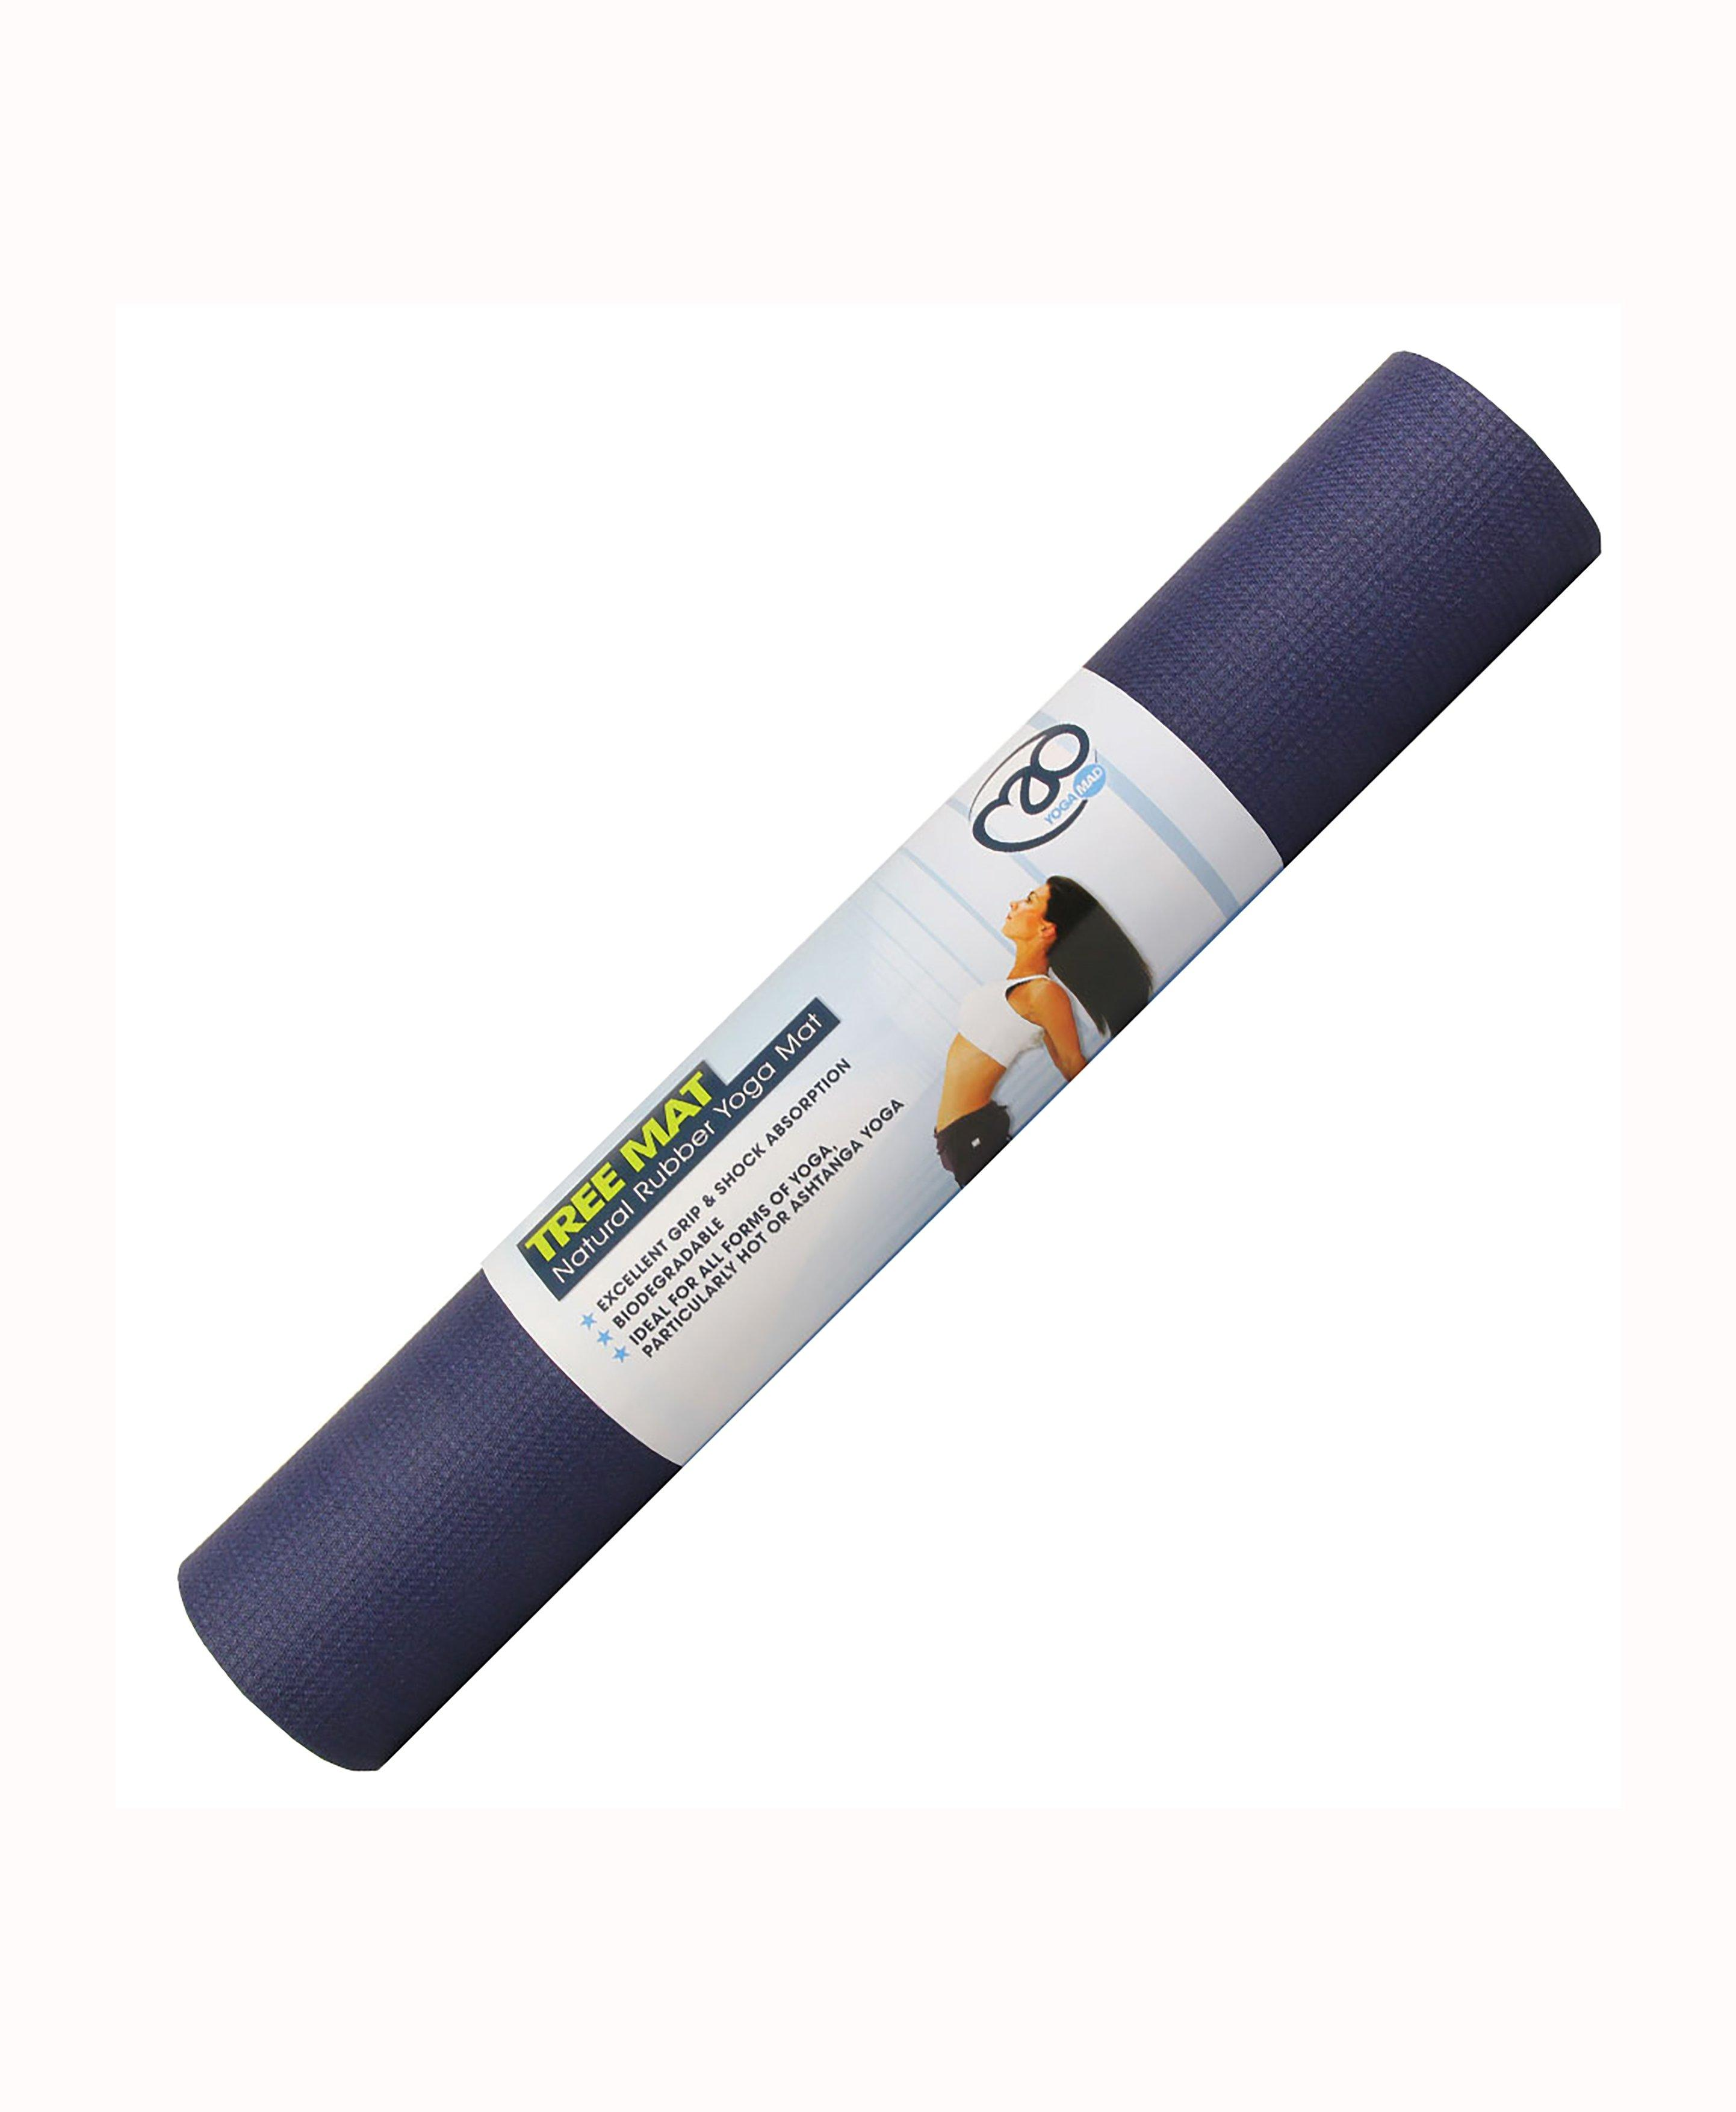 Made from natural biodegradable materials this eco-friendly yoga mat has unbeatable grip for all of your home workouts.